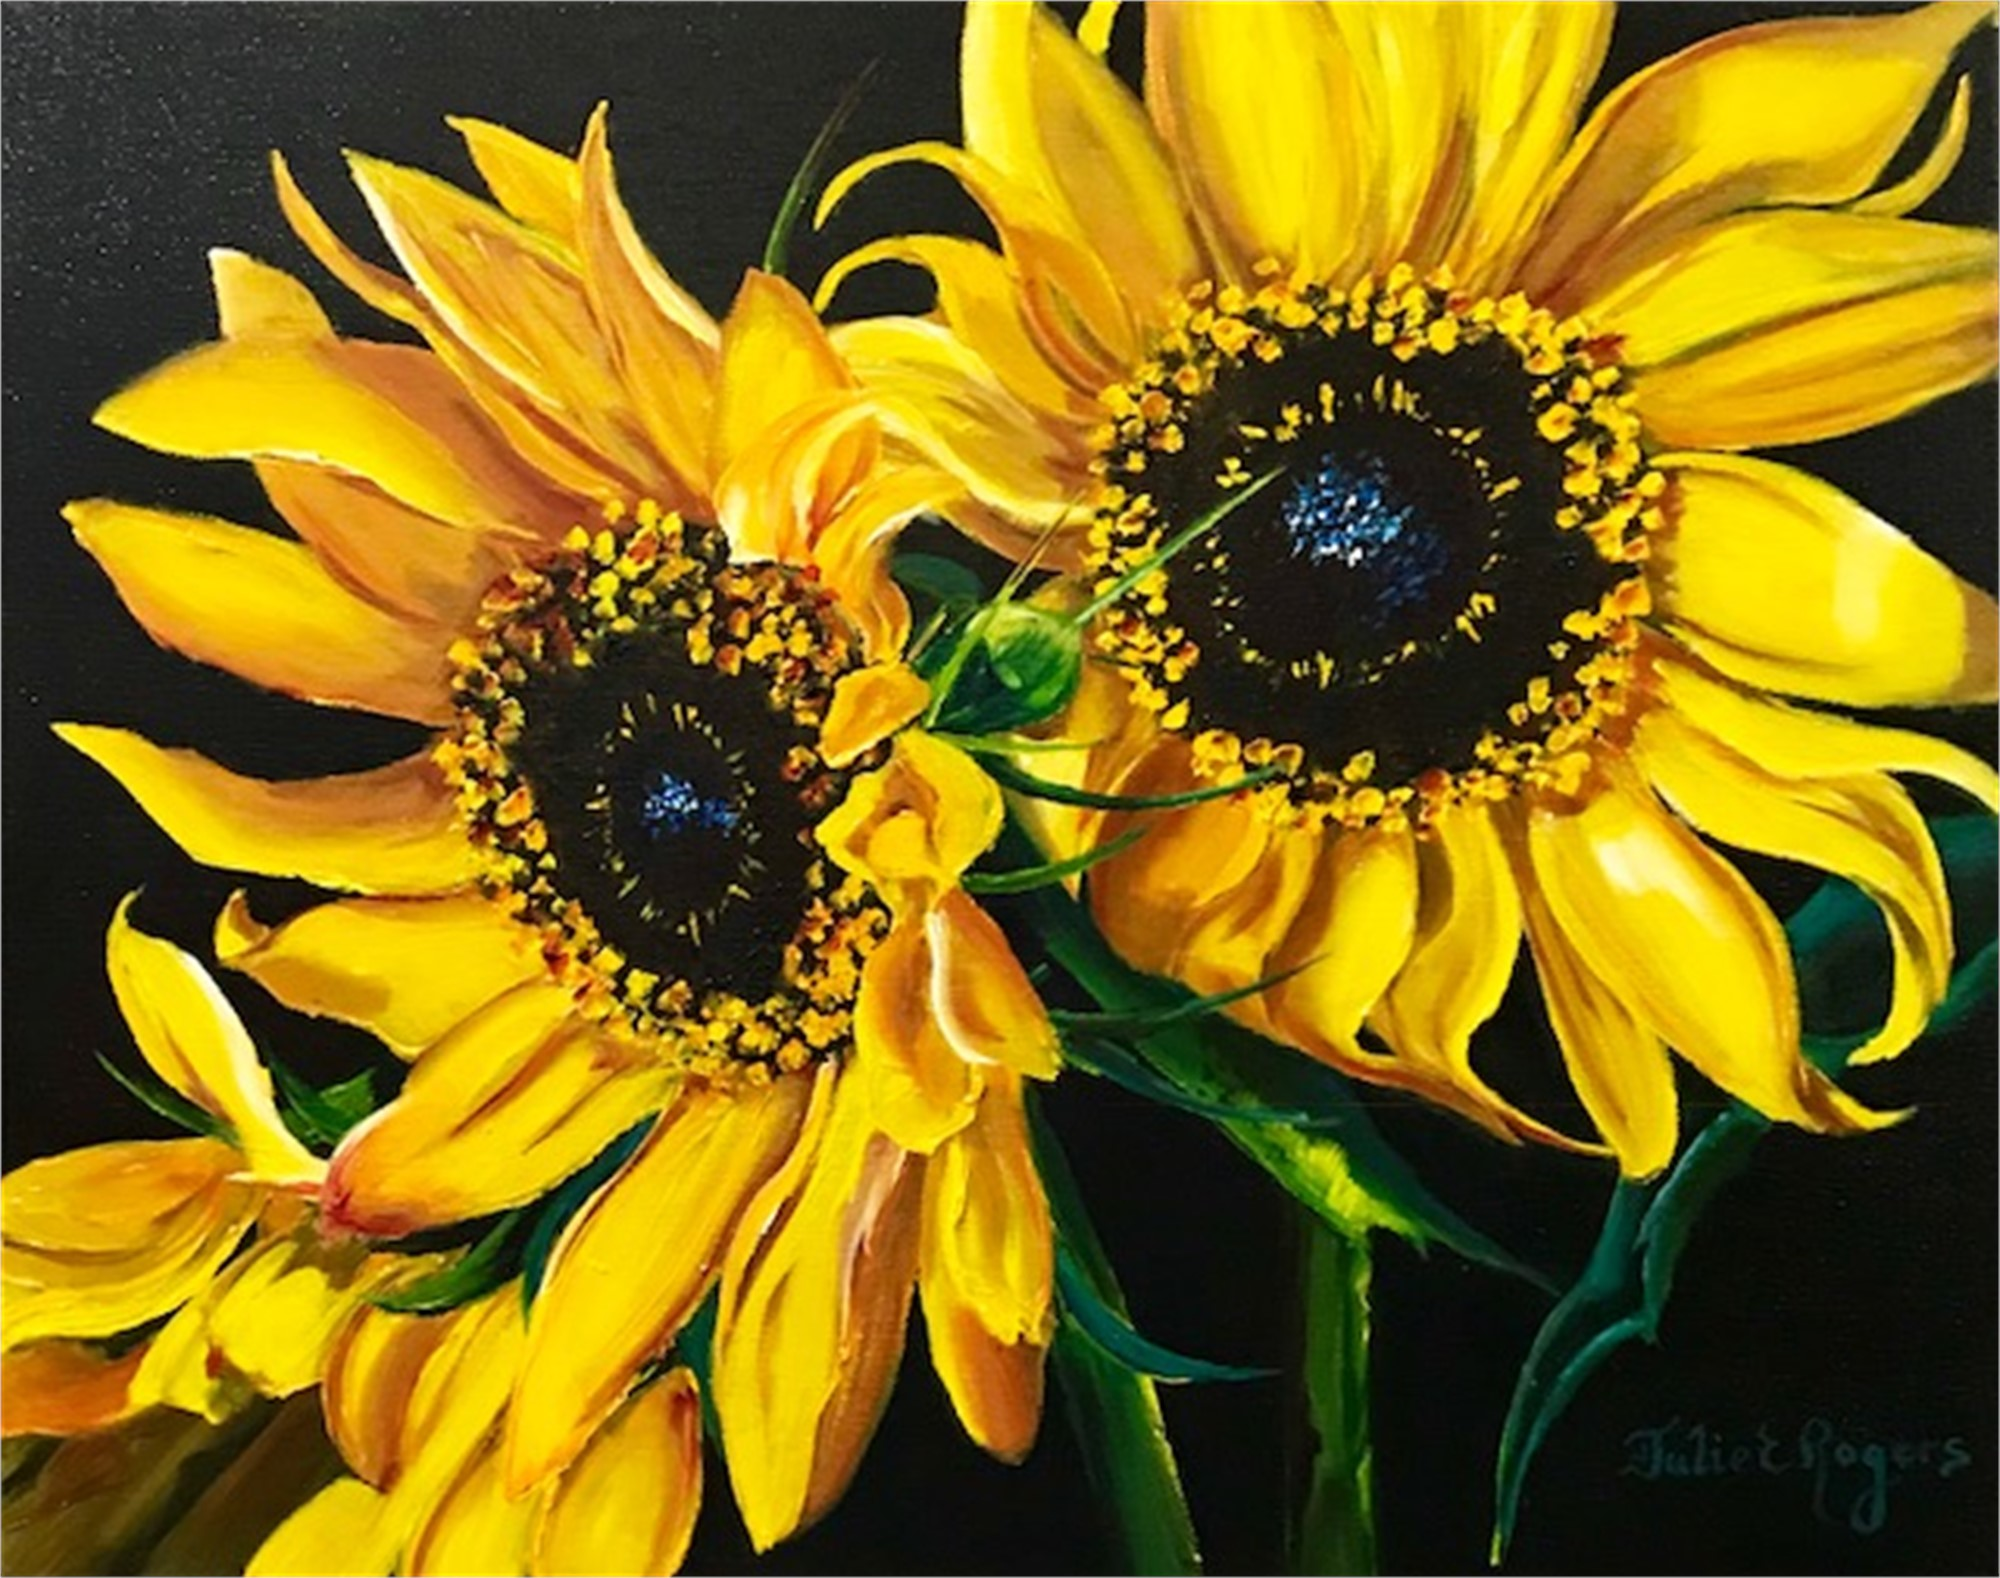 Sunflowers #7, 2018 by Julie Rogers